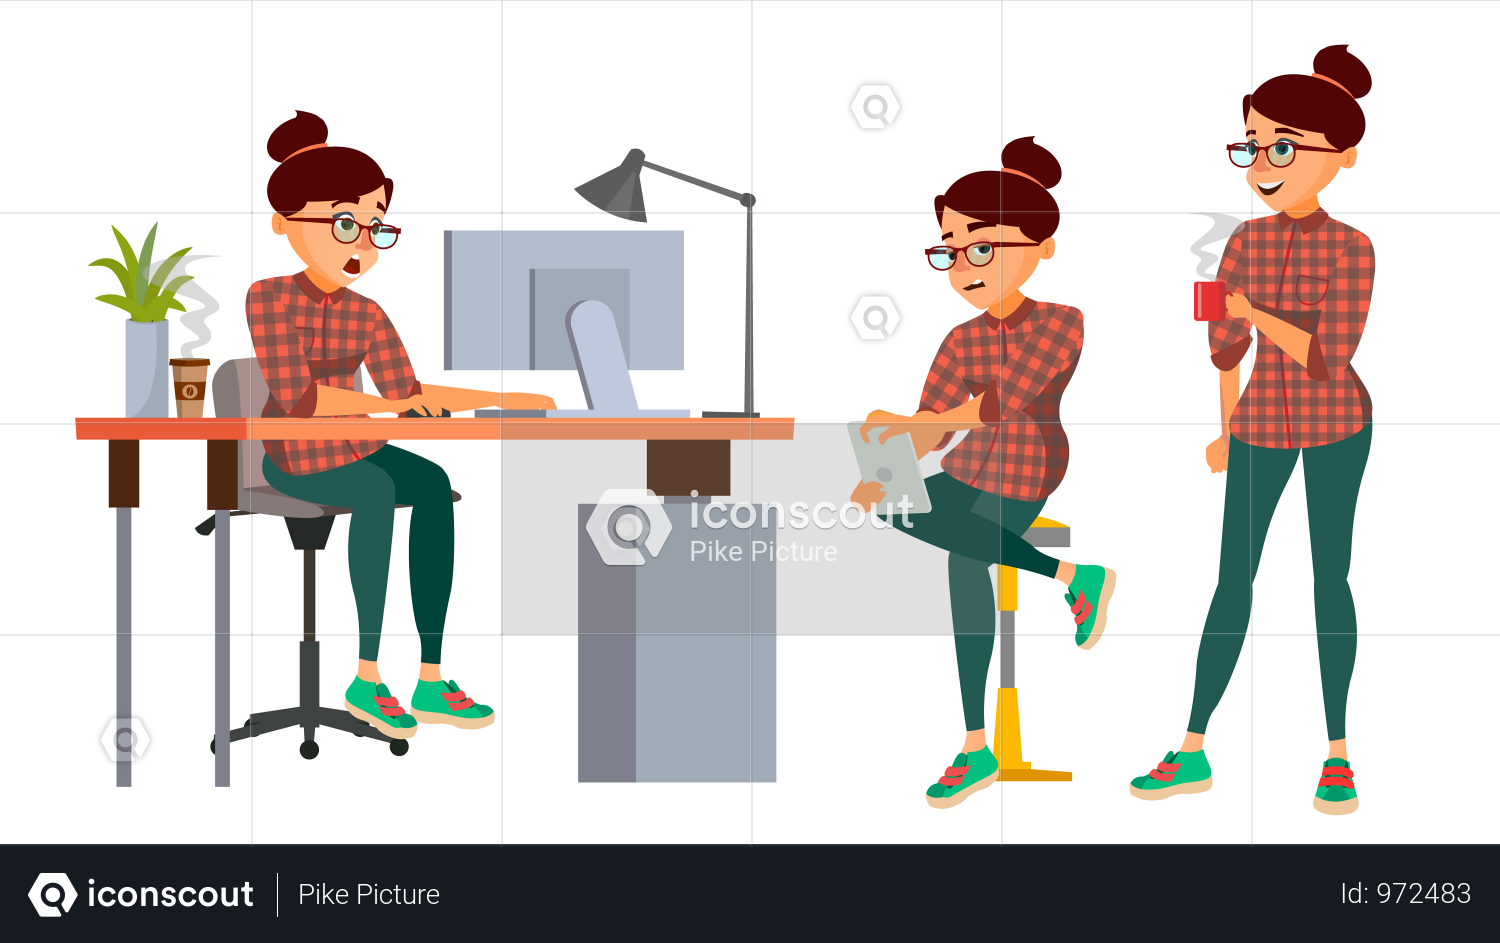 Premium Business Woman Character Illustration Download In Png Vector Format Character Illustration Female Characters Business Women